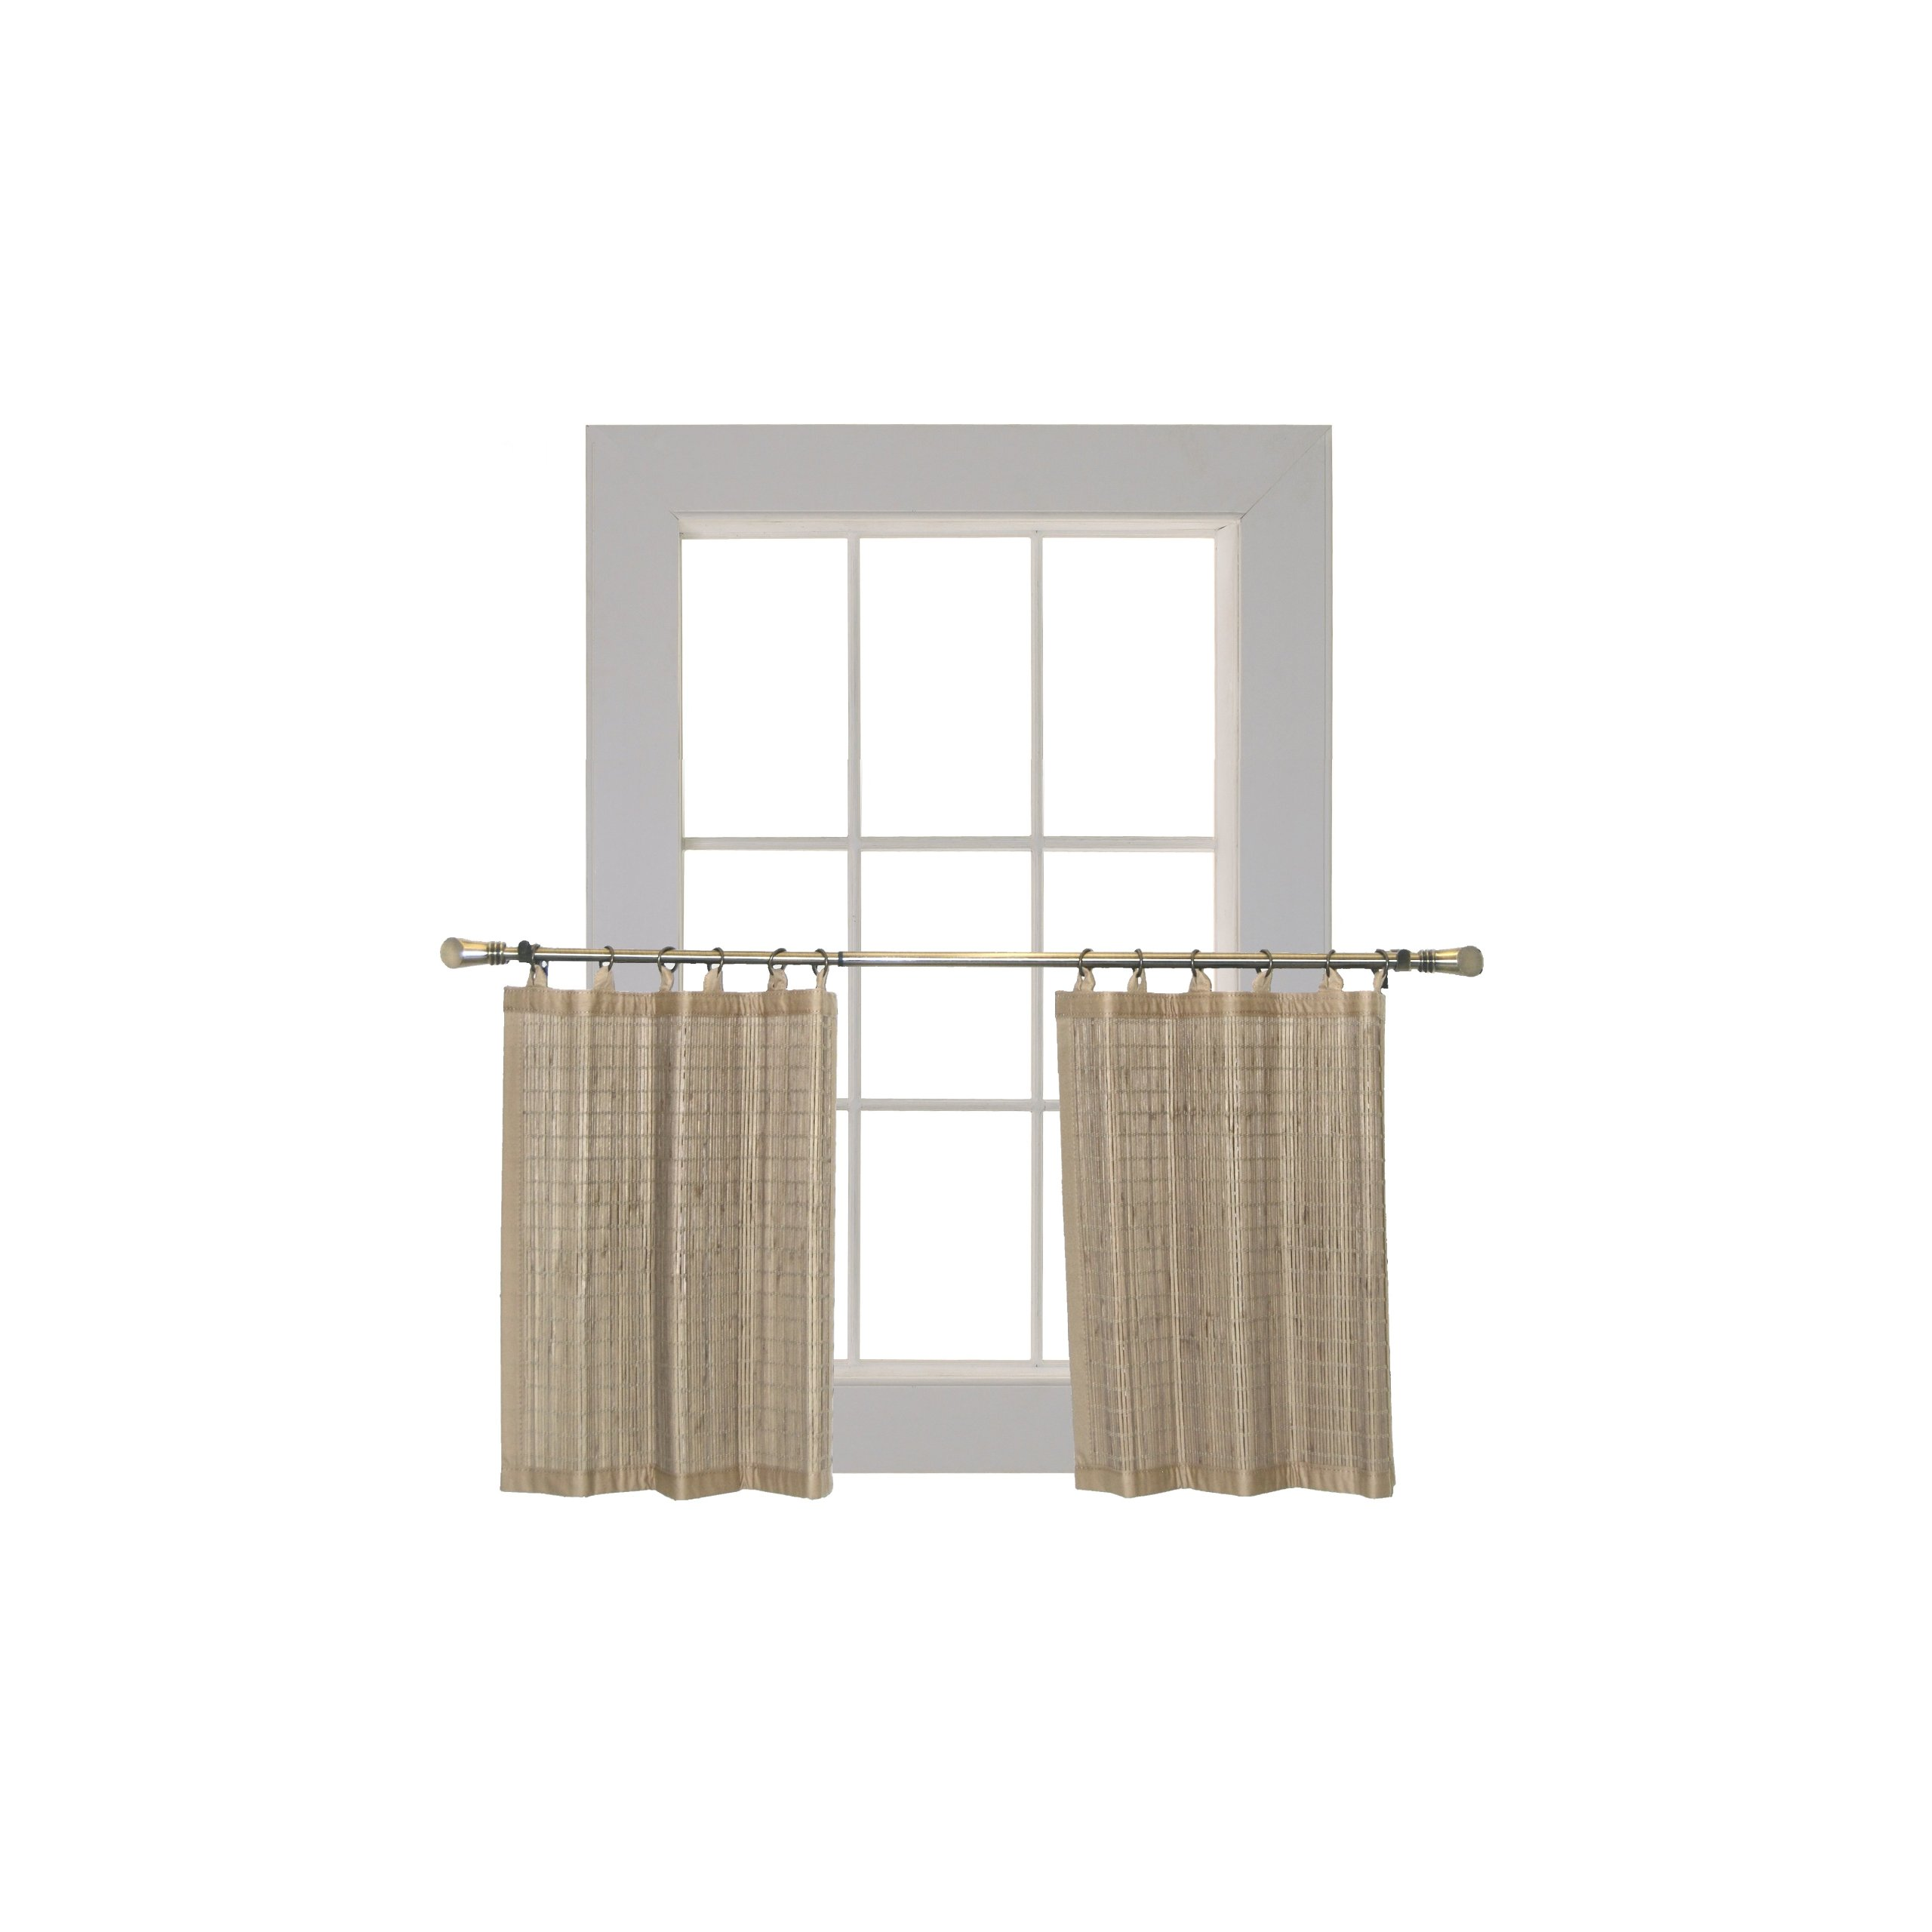 Bamboo Ring Top Curtain Ring Top Tier Set, 48 by 24-Inch L x H, Driftwood by Bamboo